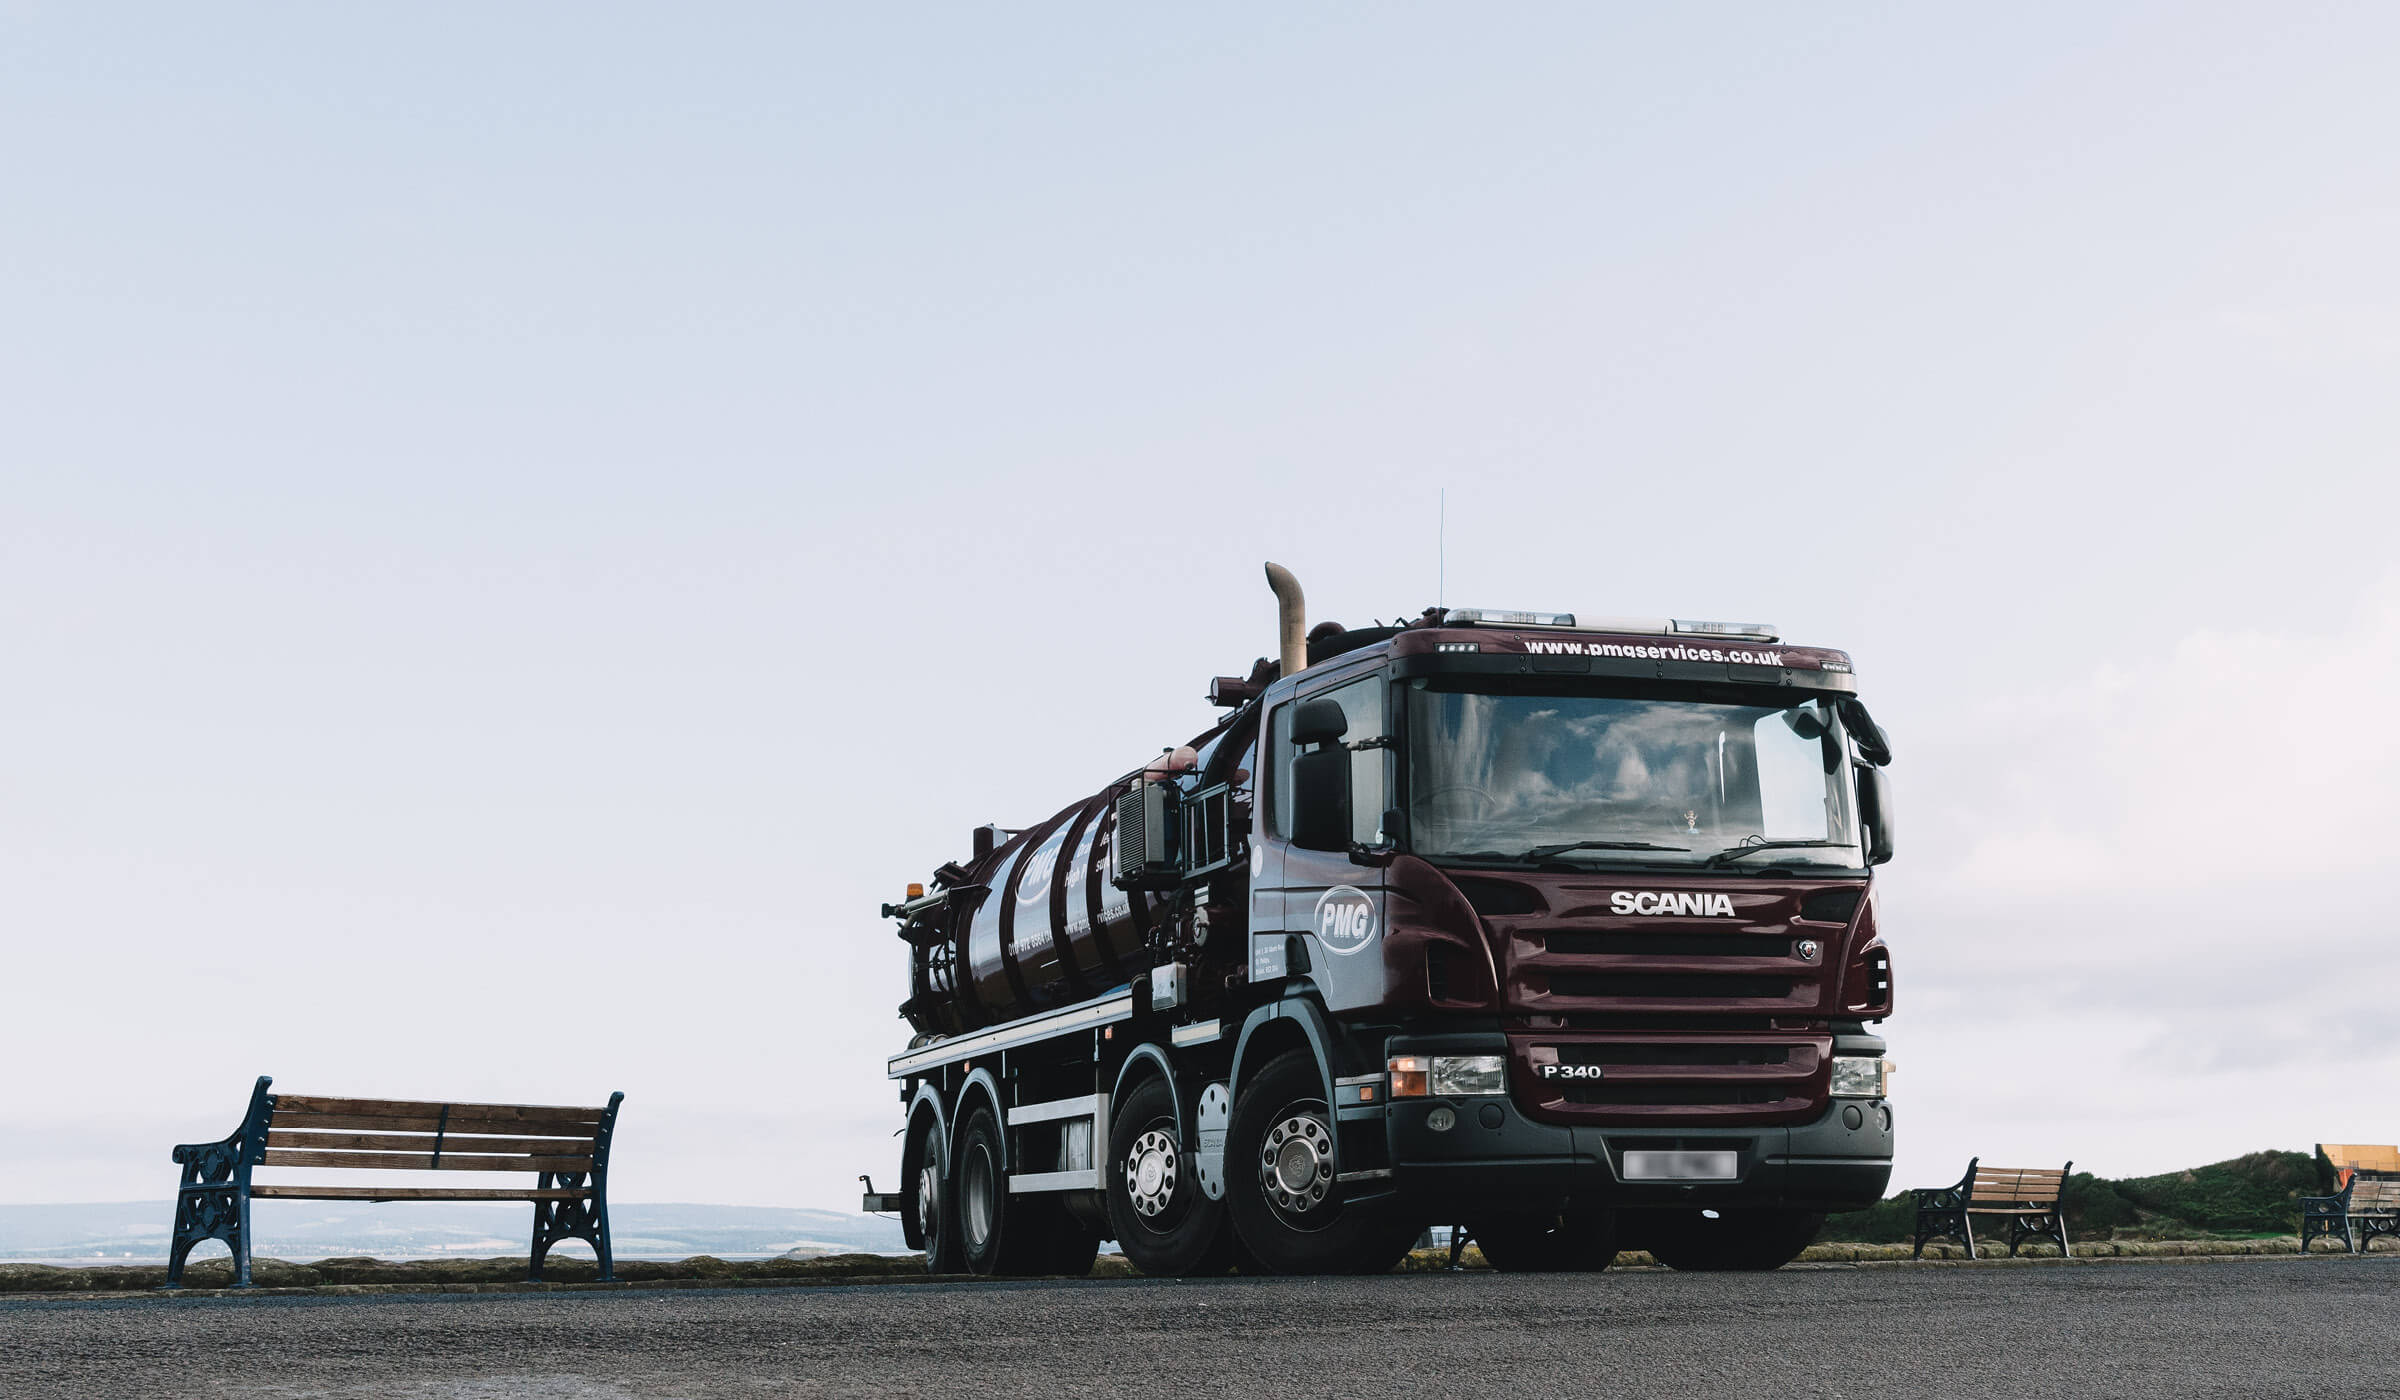 photograph of Bristol based environmental services vehicle by the beach